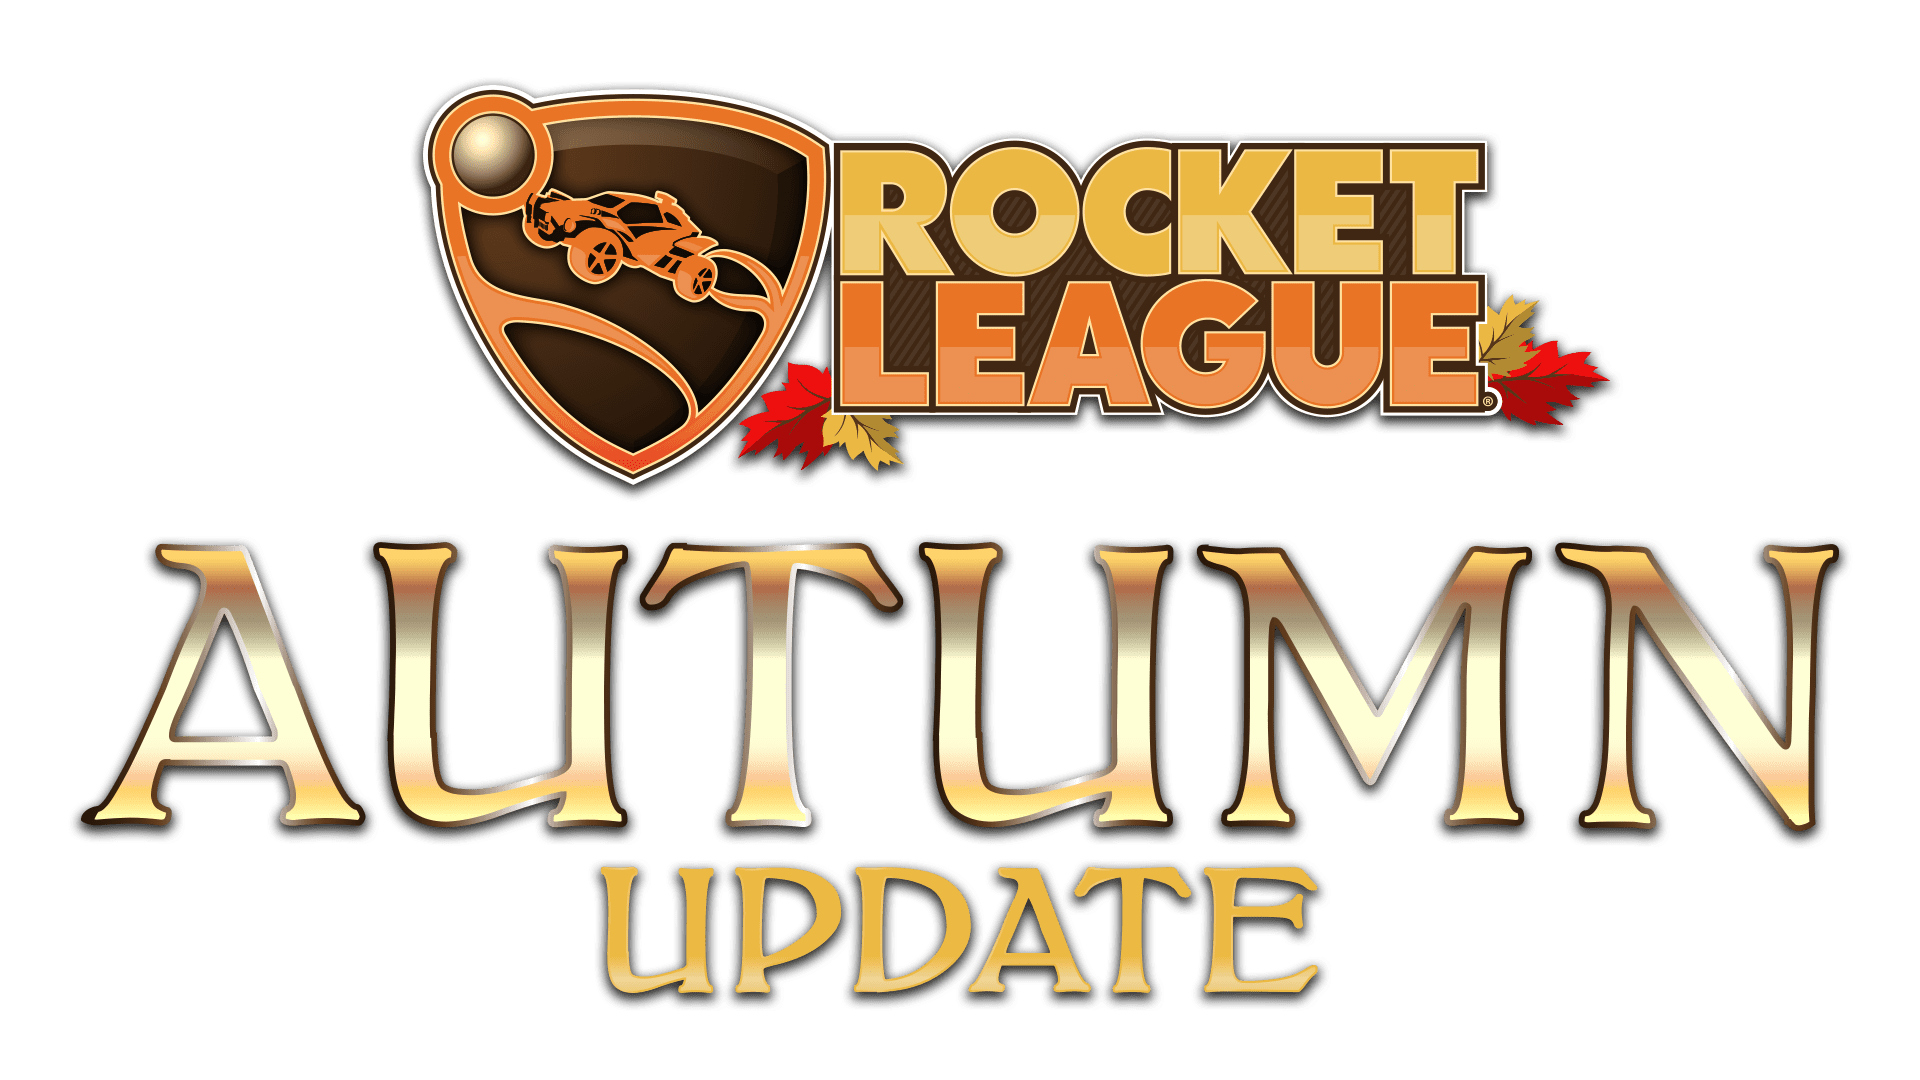 Autumn Update